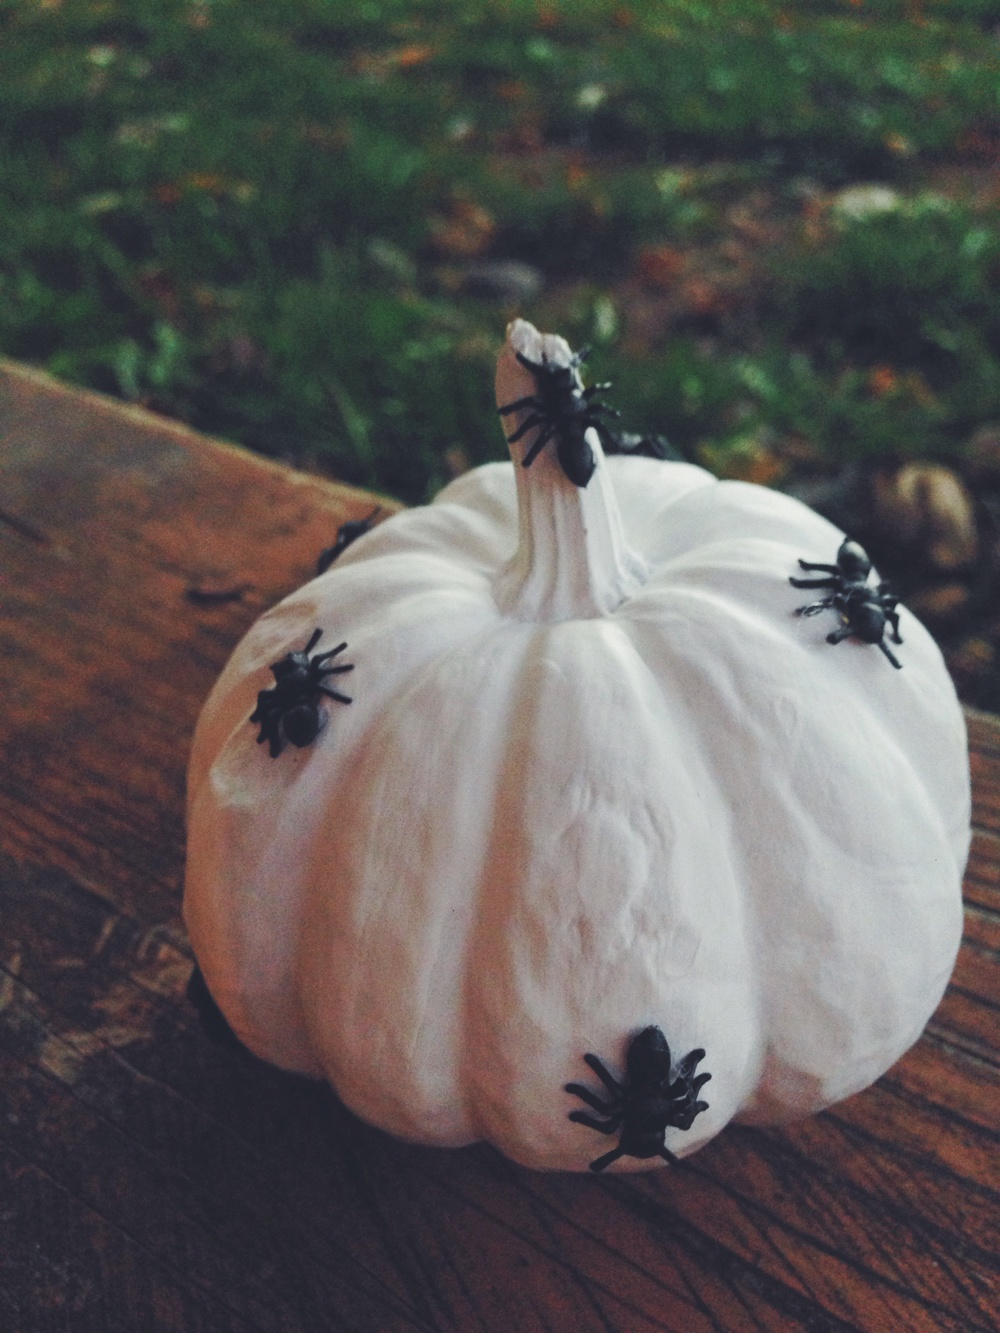 Carving + Decorating Pumpkins. Click through for details.